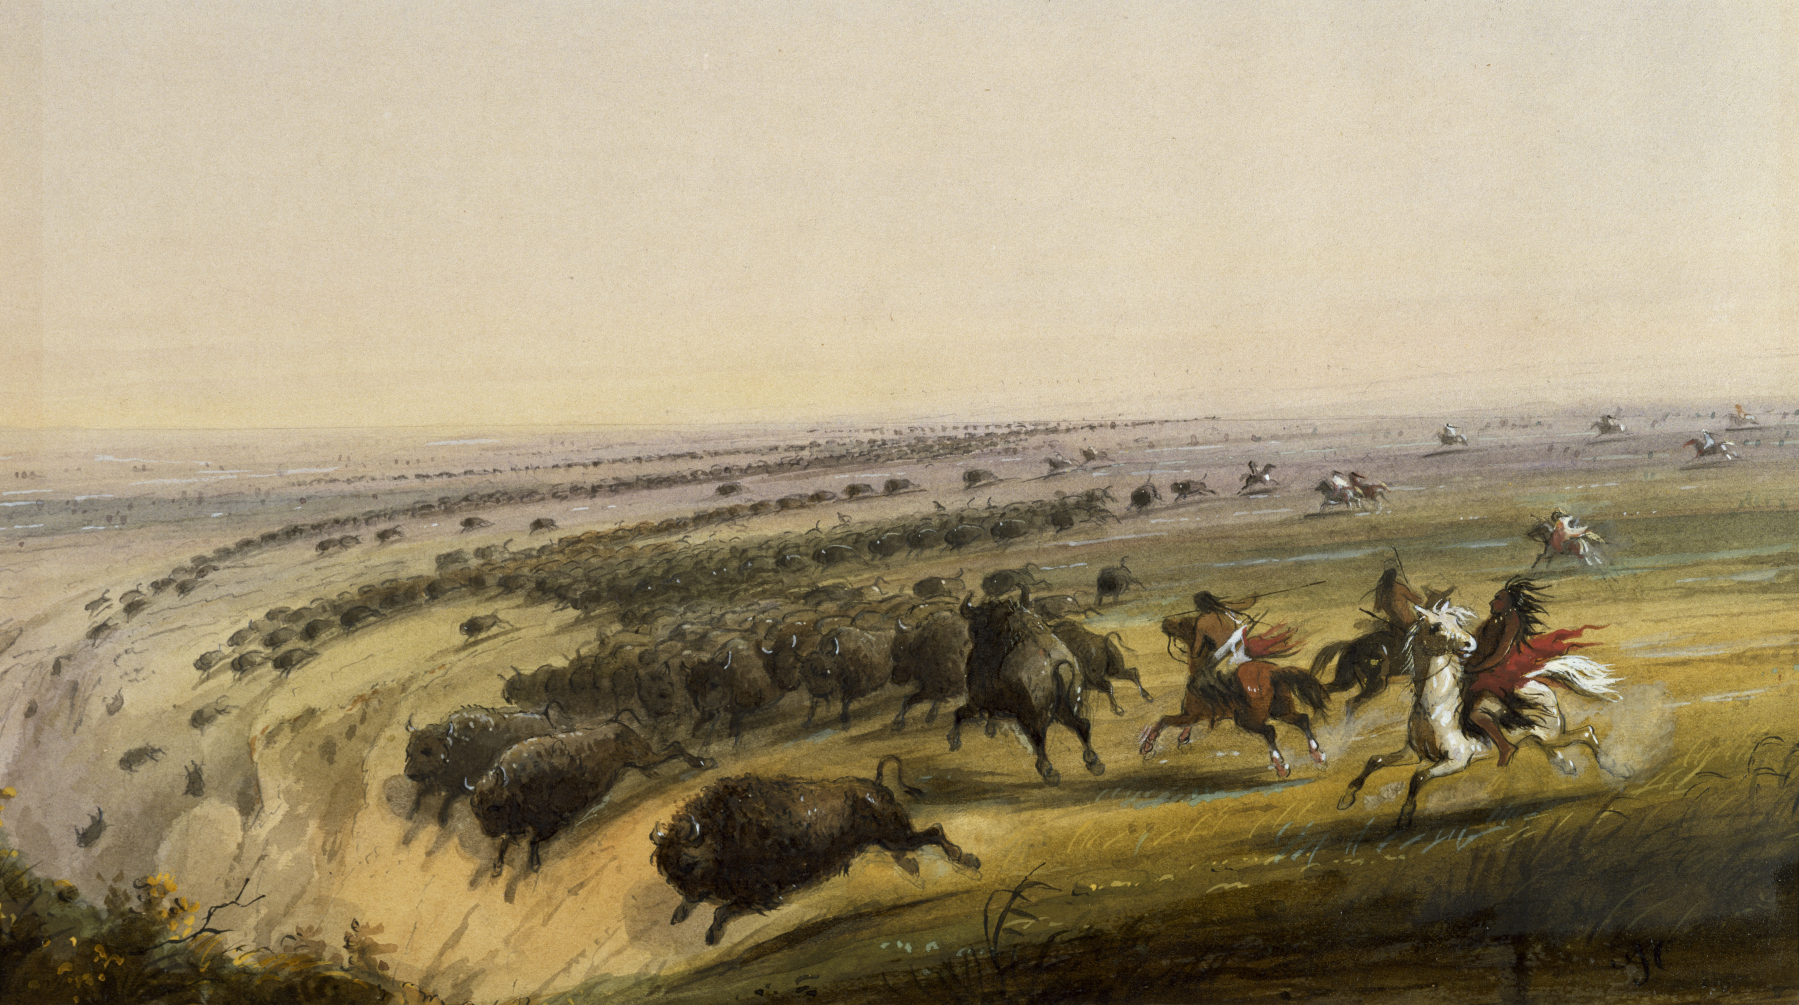 Native Americans Managed The Prairie For Better Bison